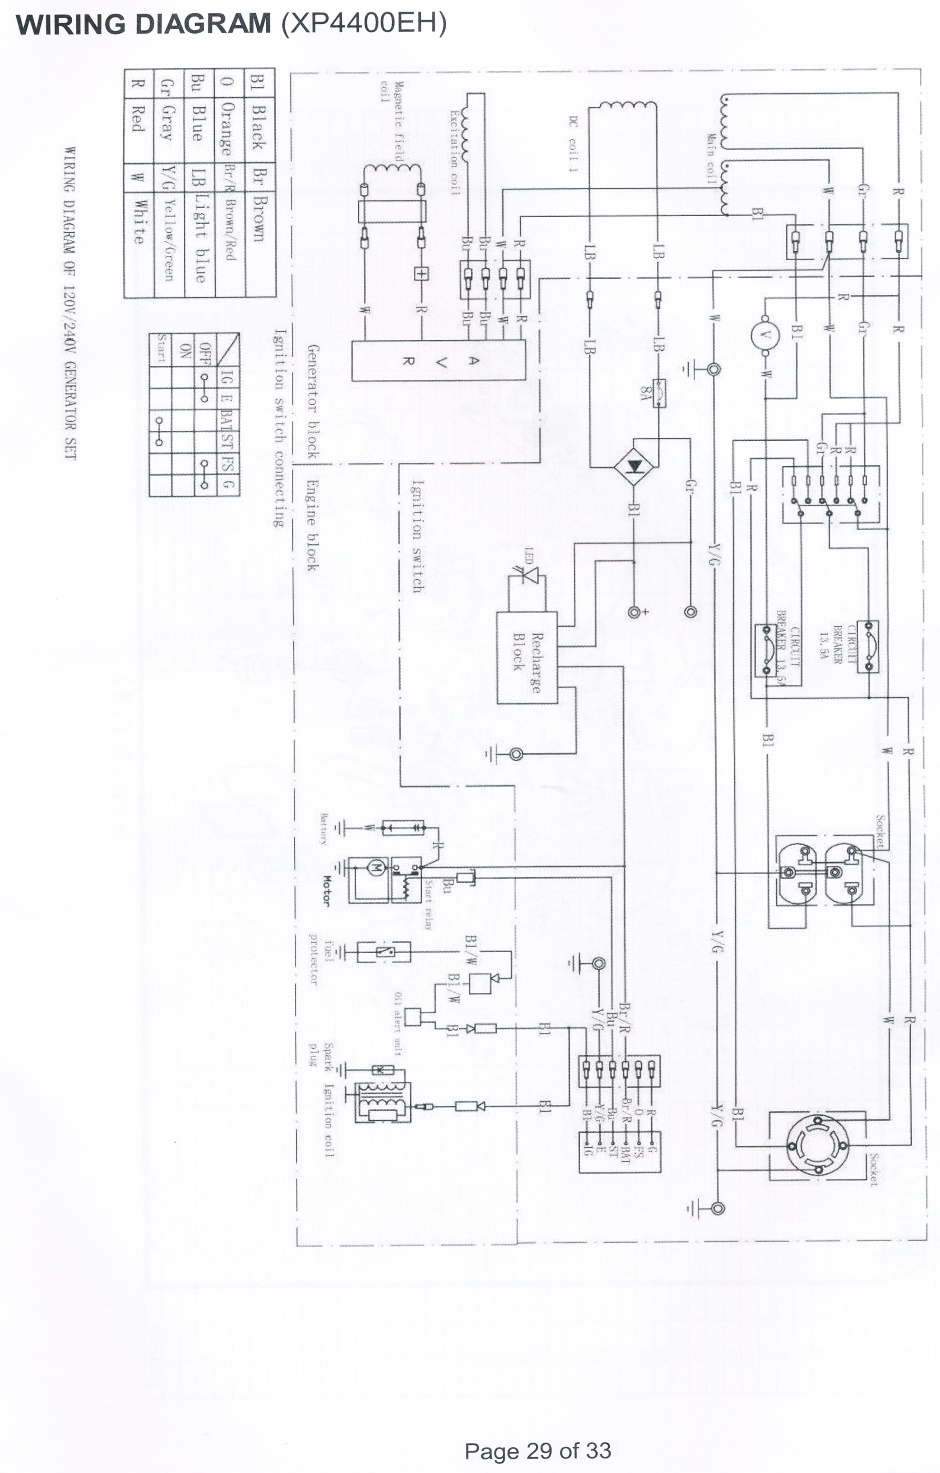 Generac Generator Wiring Diagram Electrical Duromax Experience Of Rh Carnationconstruction Com Diagrams